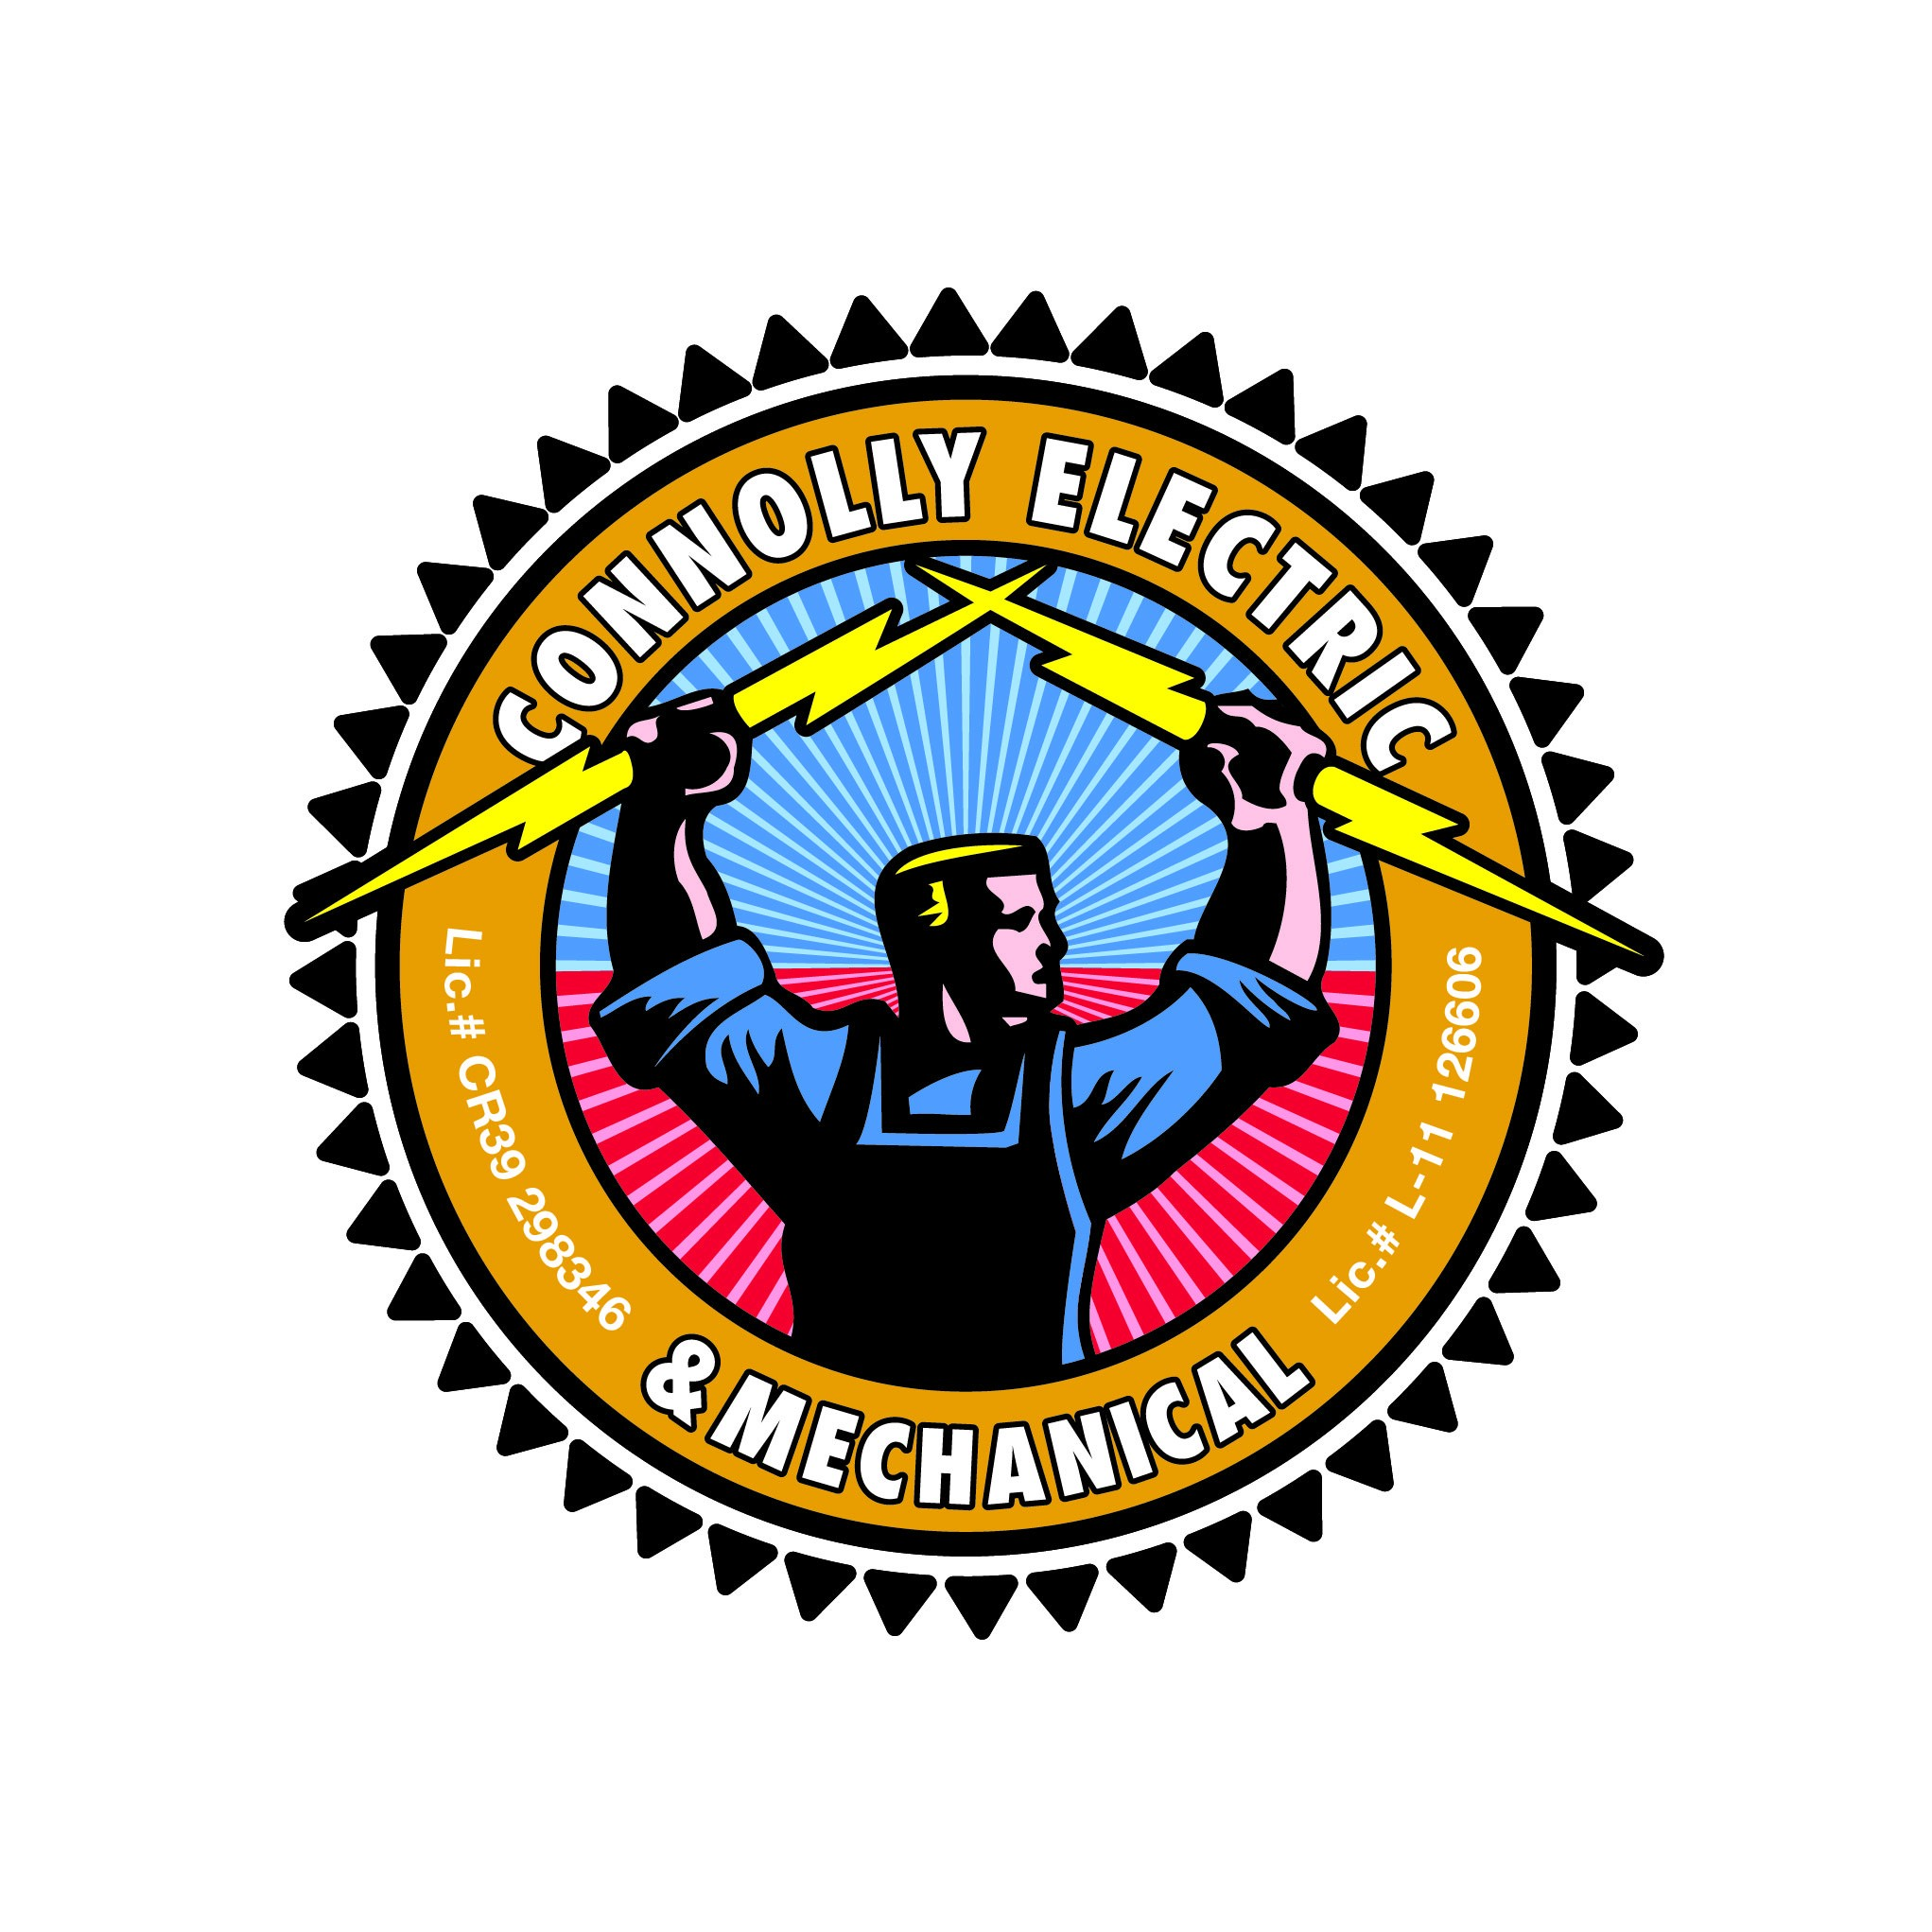 Connolly Electric And Mechanical logo